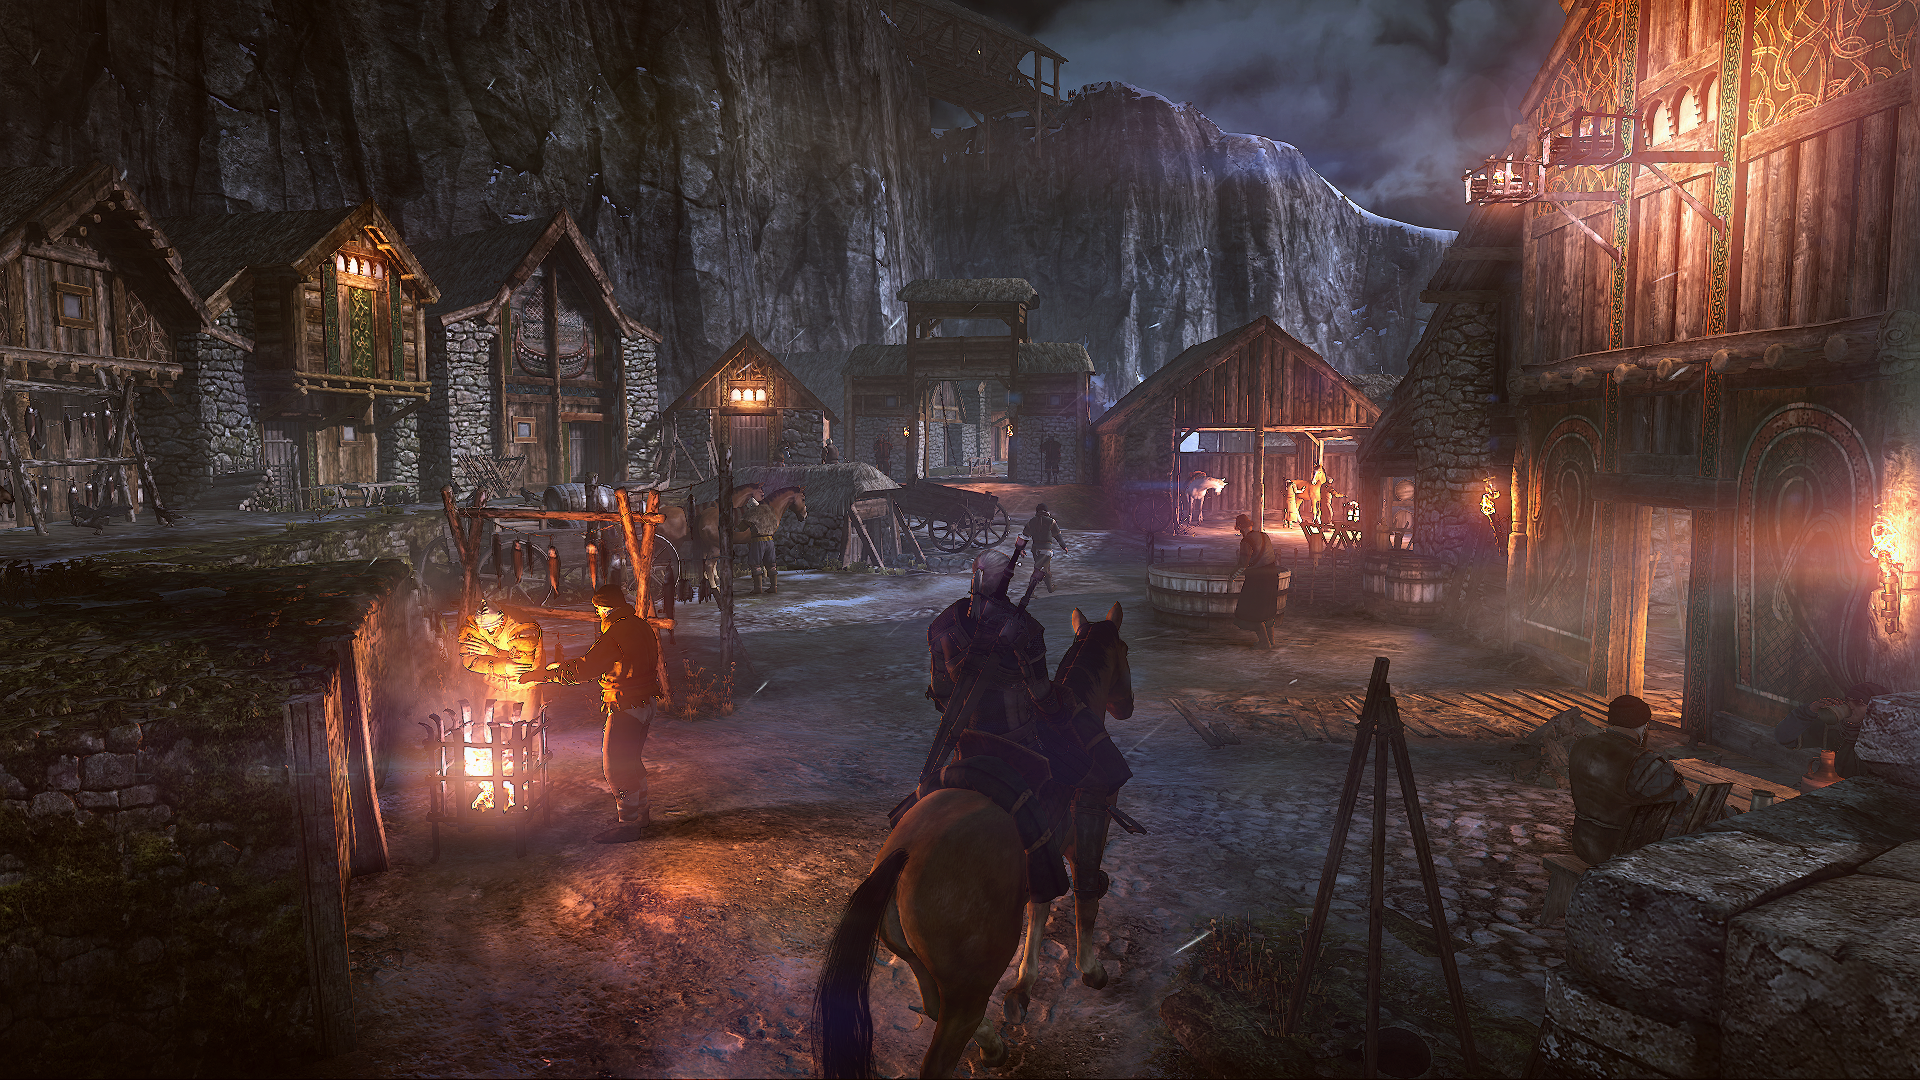 10_The_Witcher_3_Wild_Hunt_Town.png